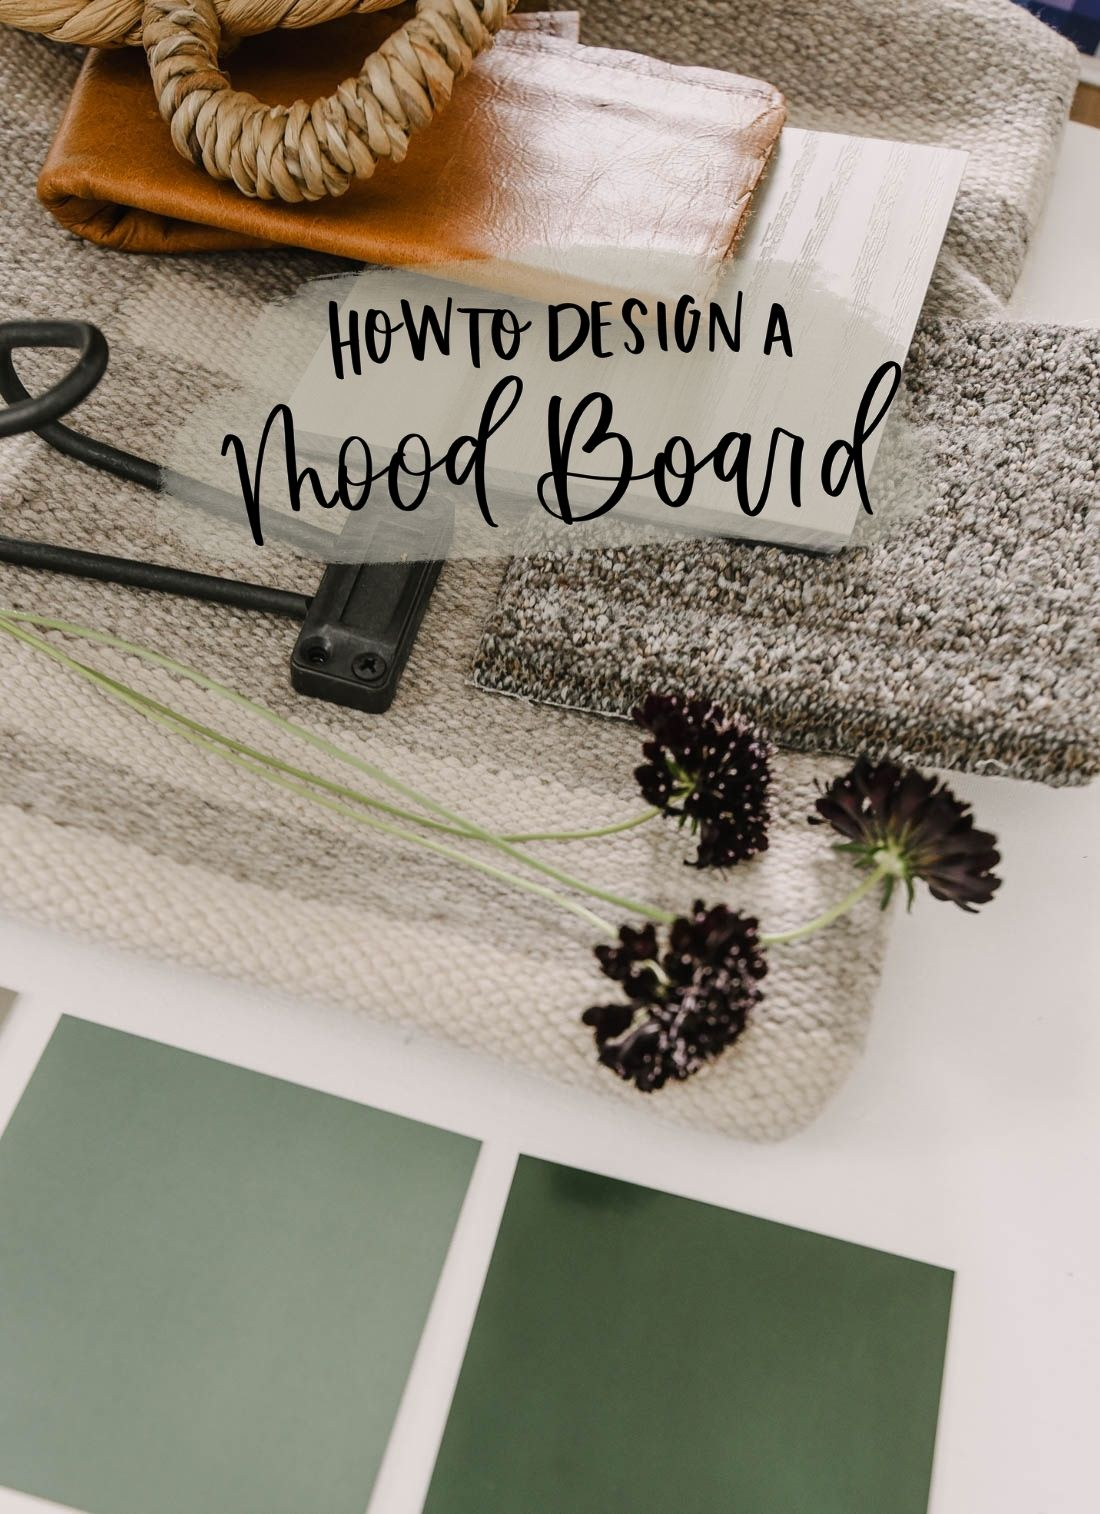 How to Design a Mood Board